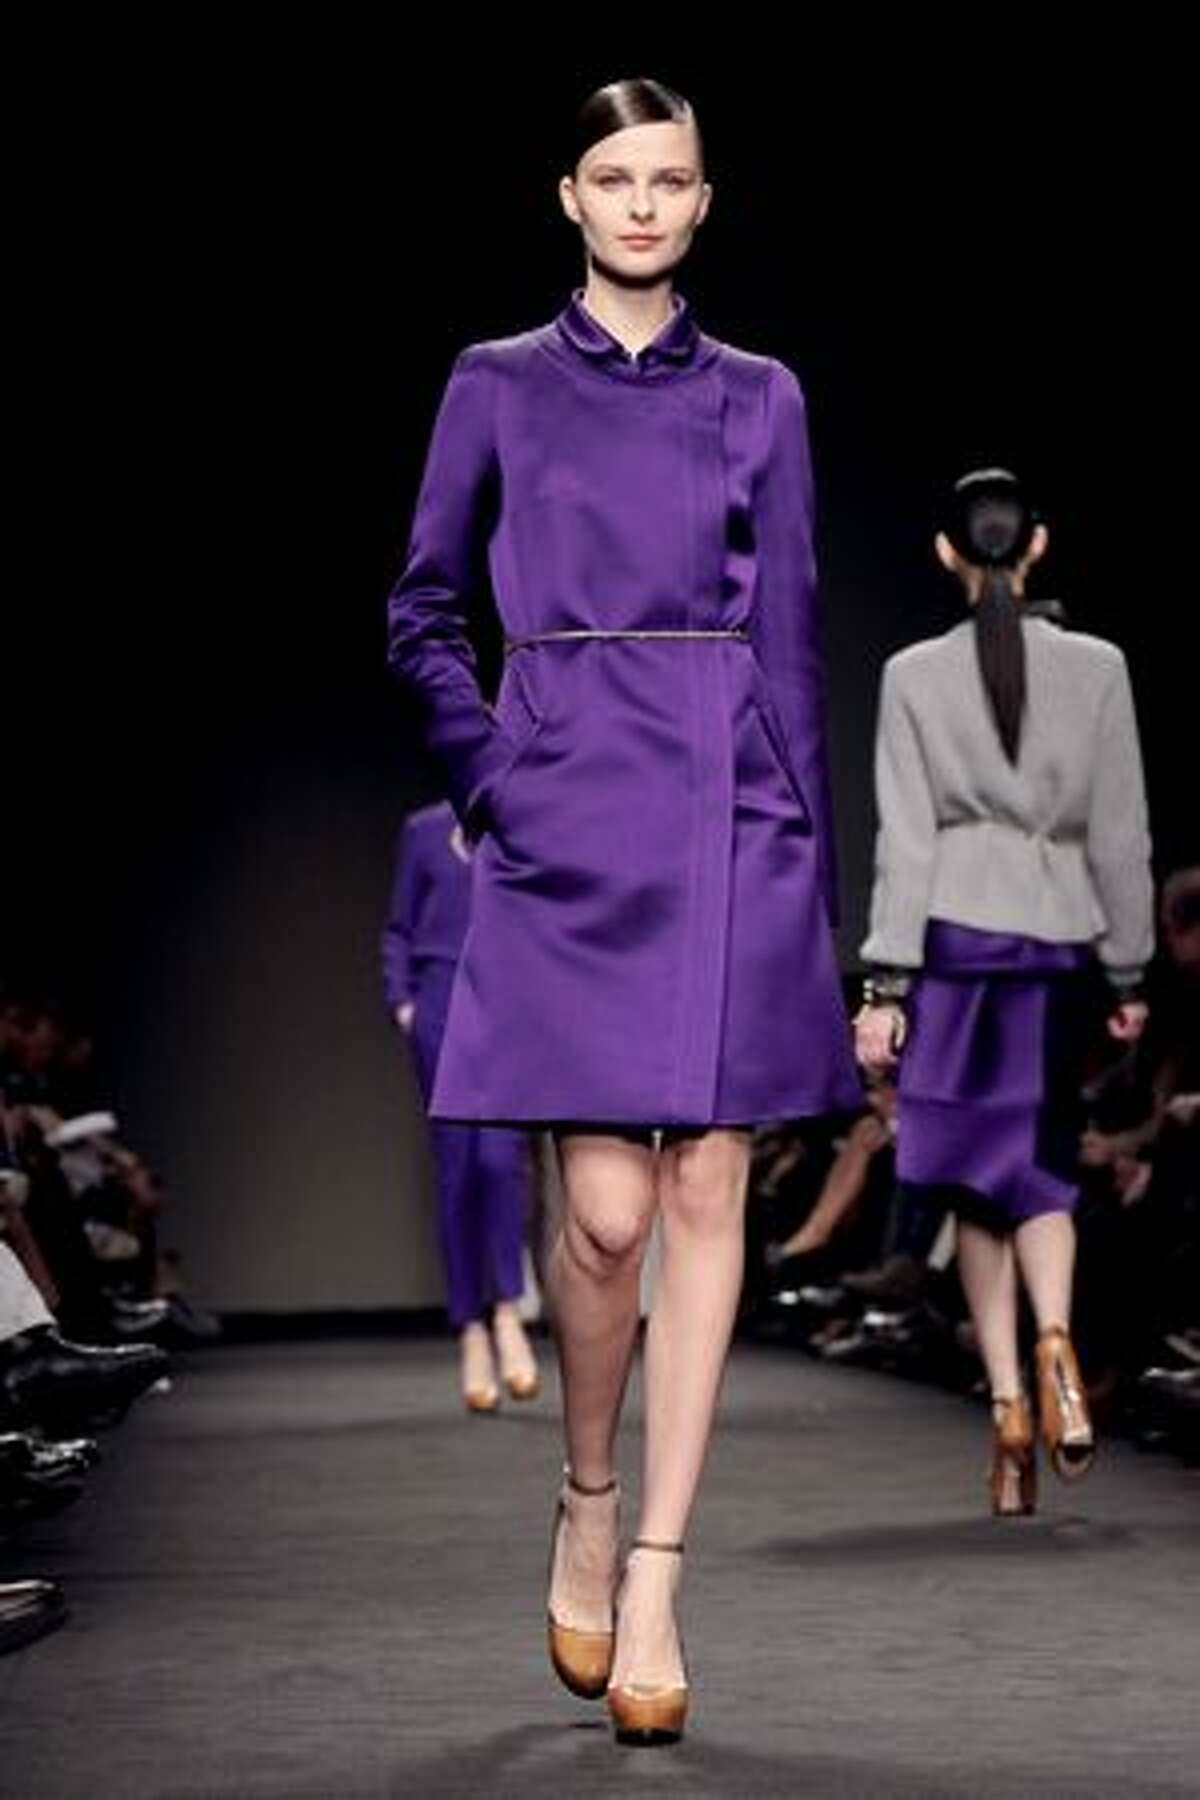 A model walks the runway during the Brioni fashion show as part of Milan Fashion Week autumn/winter 2011 in Milan, Italy on Sunday, Feb. 27, 2011.